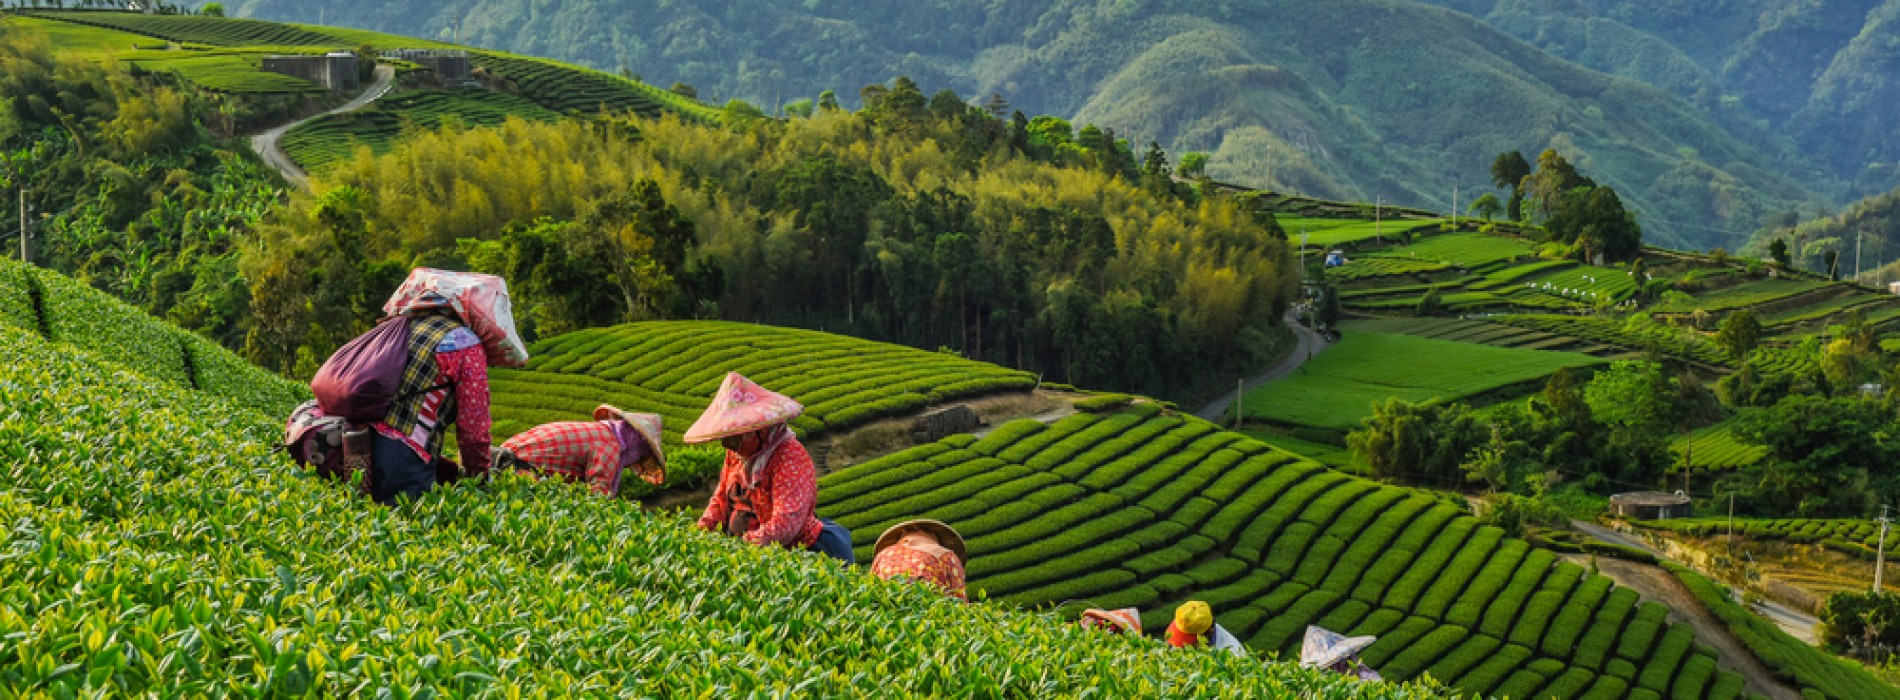 Holidays for Healing In Taiwan: Tea Trails and Celebrations